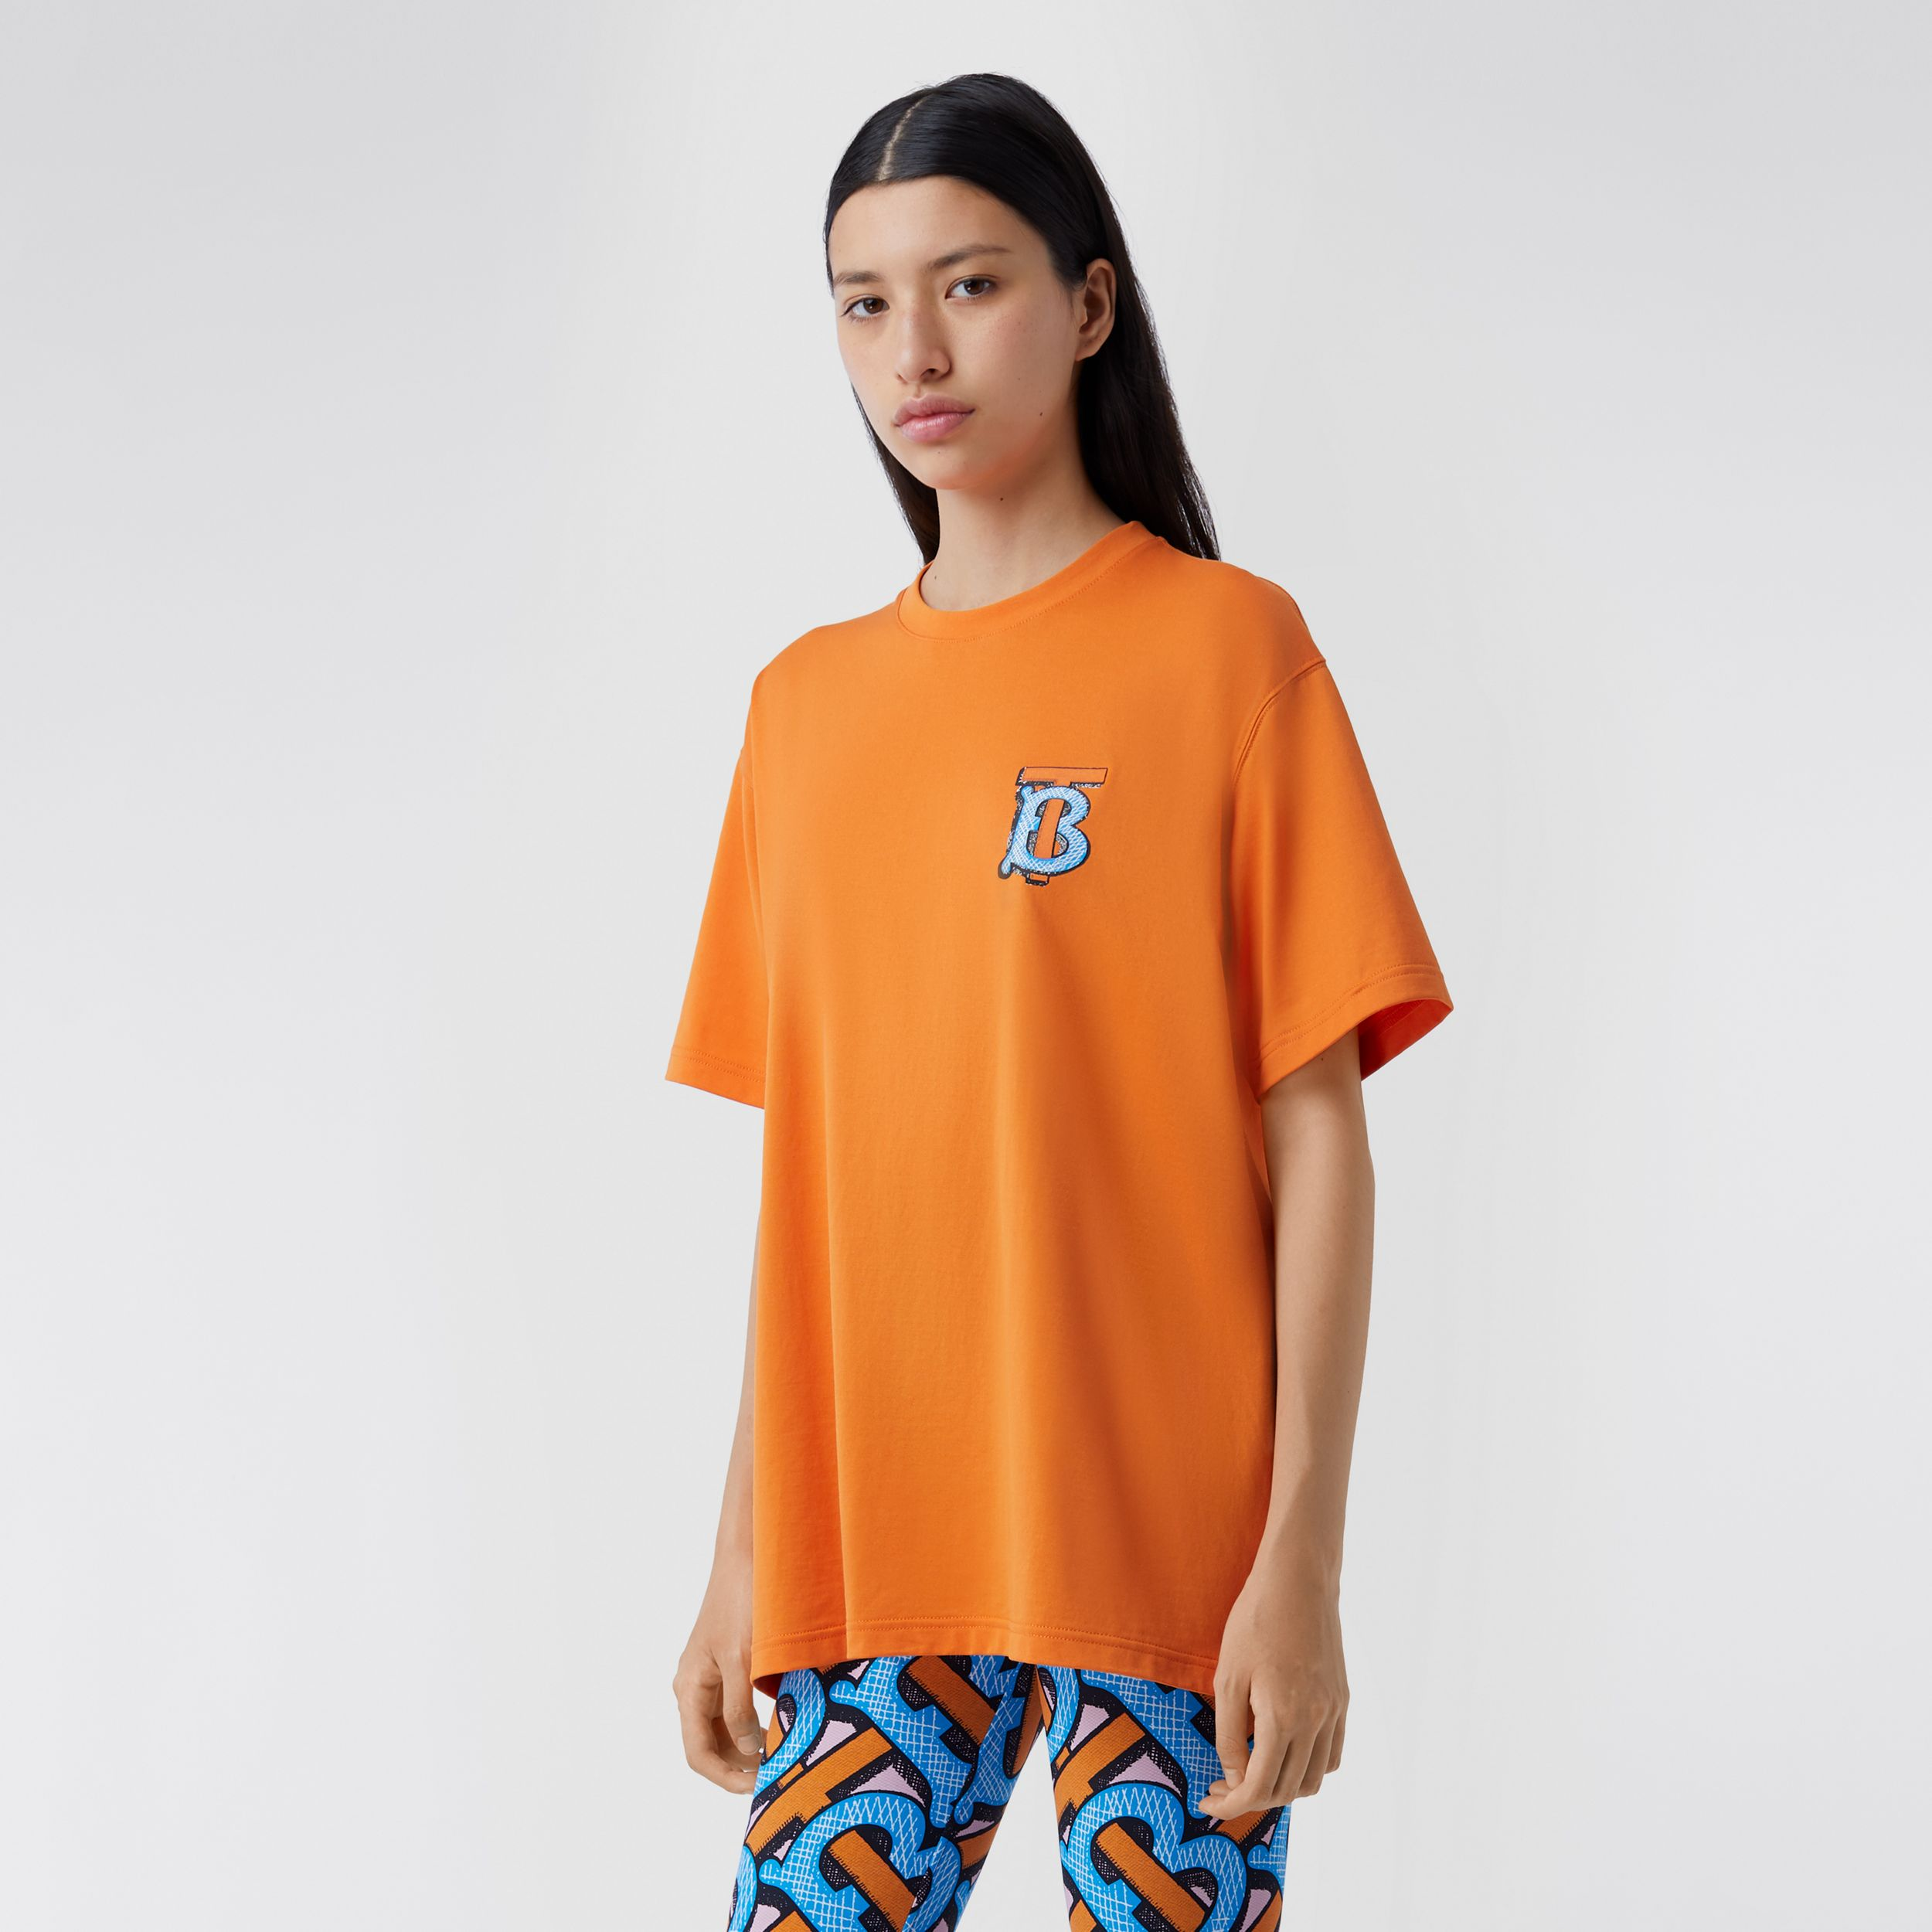 Monogram Motif Cotton T-shirt – Unisex in Bright Orange | Burberry - 2